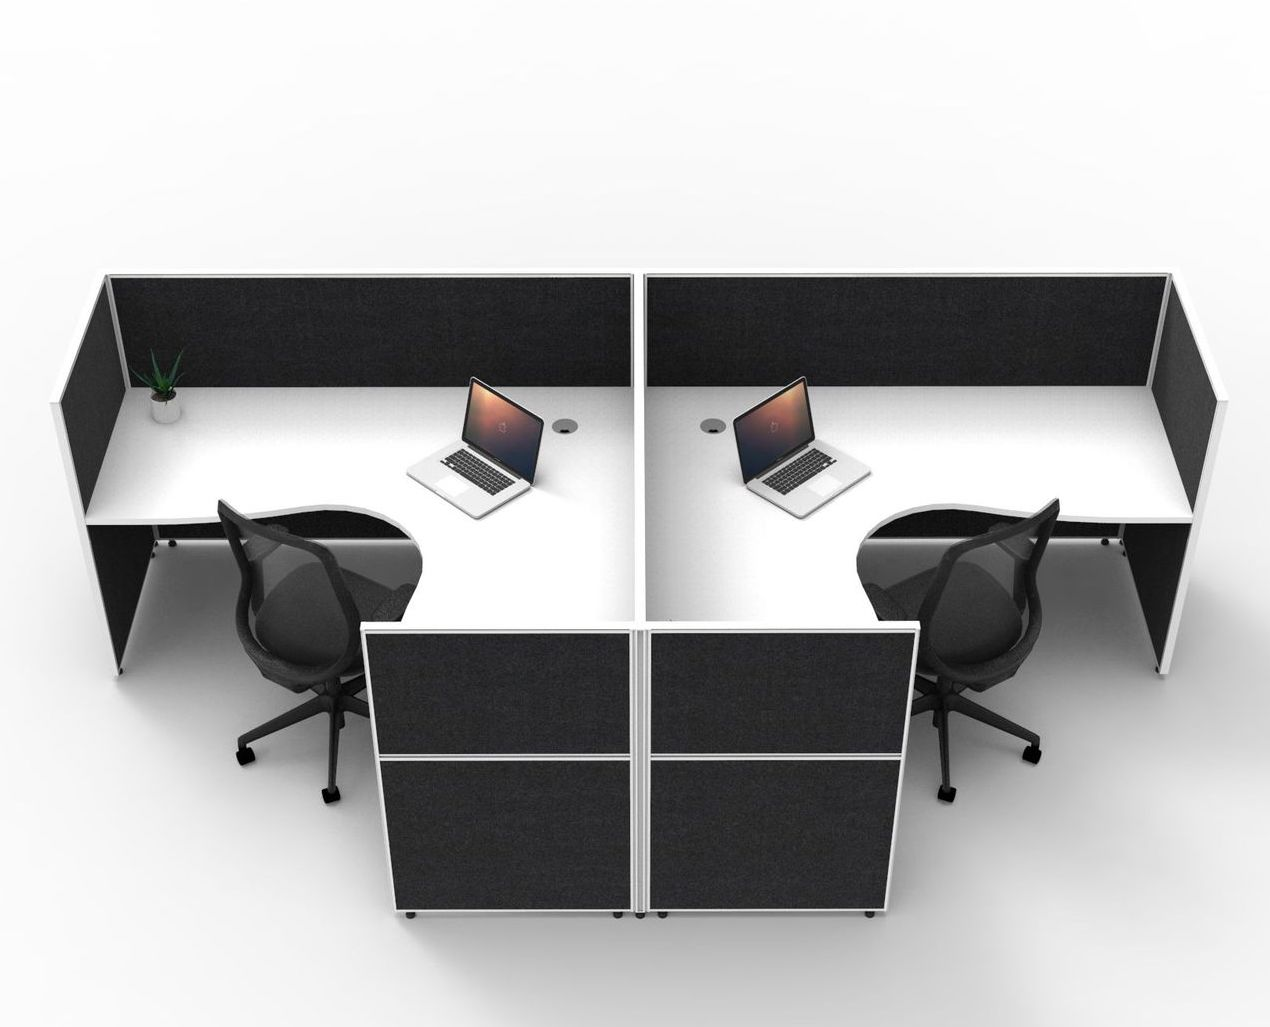 SHUSH30 T-Shaped 2P Workstation with Fully Enclosed 1200mmH Privacy Screens (3 Size Options)